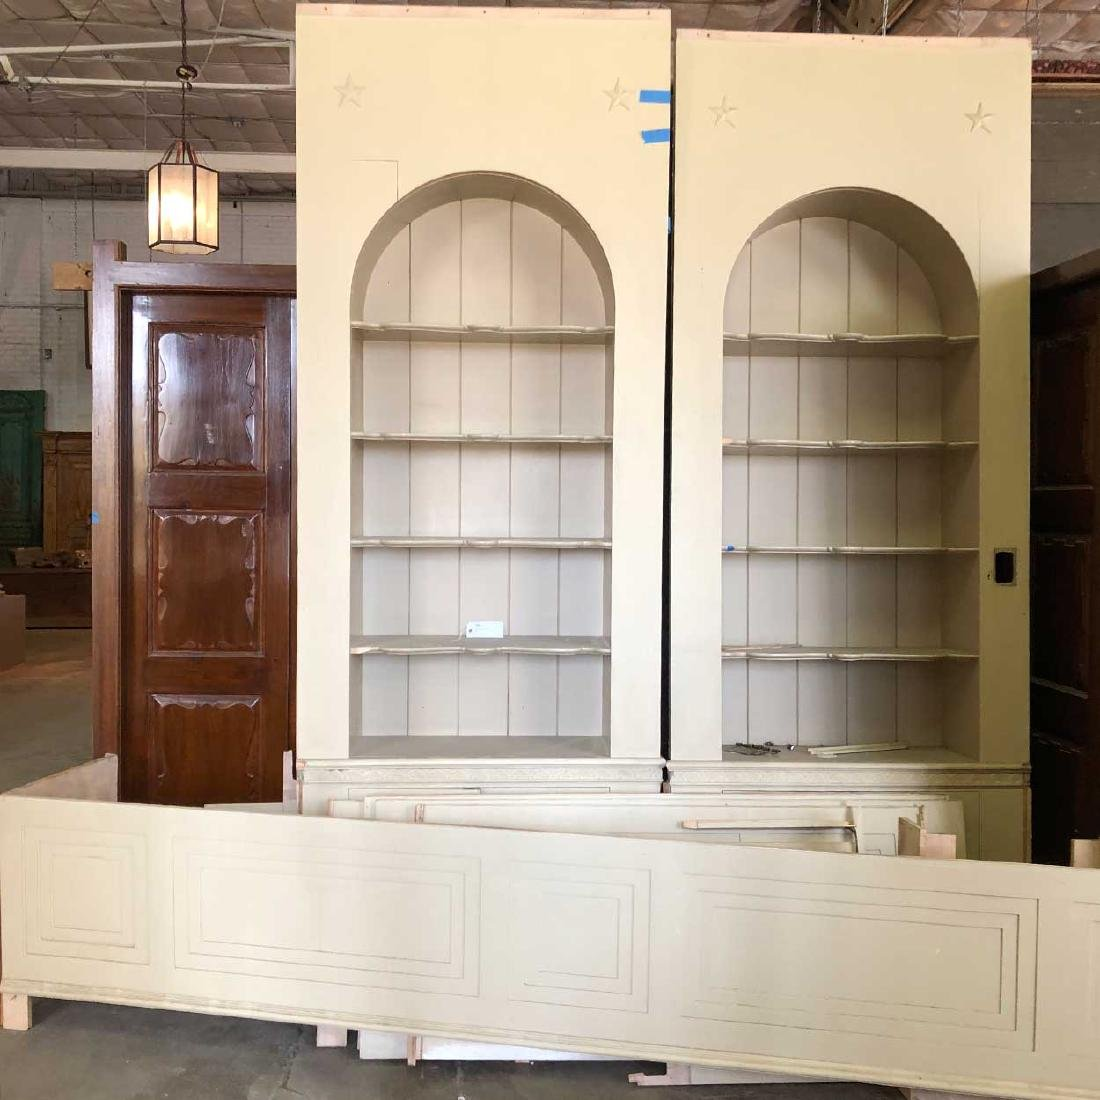 American Georgian Style Built-In Cabinets and Paneling